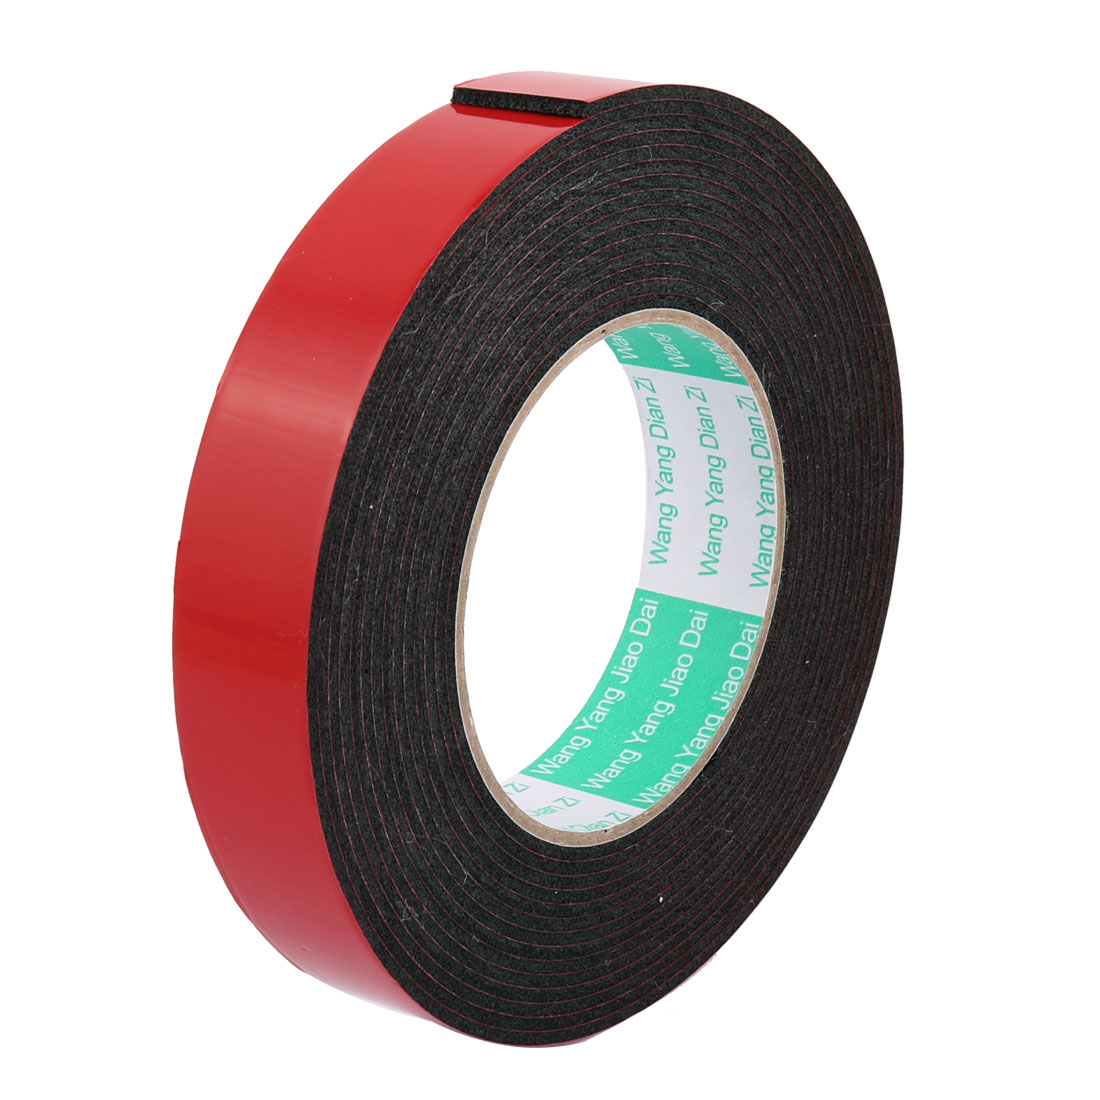 2.5CM Width 5 Meters Length 2MM Thick Dual Sided Sealing Shockproof Sponge Tape